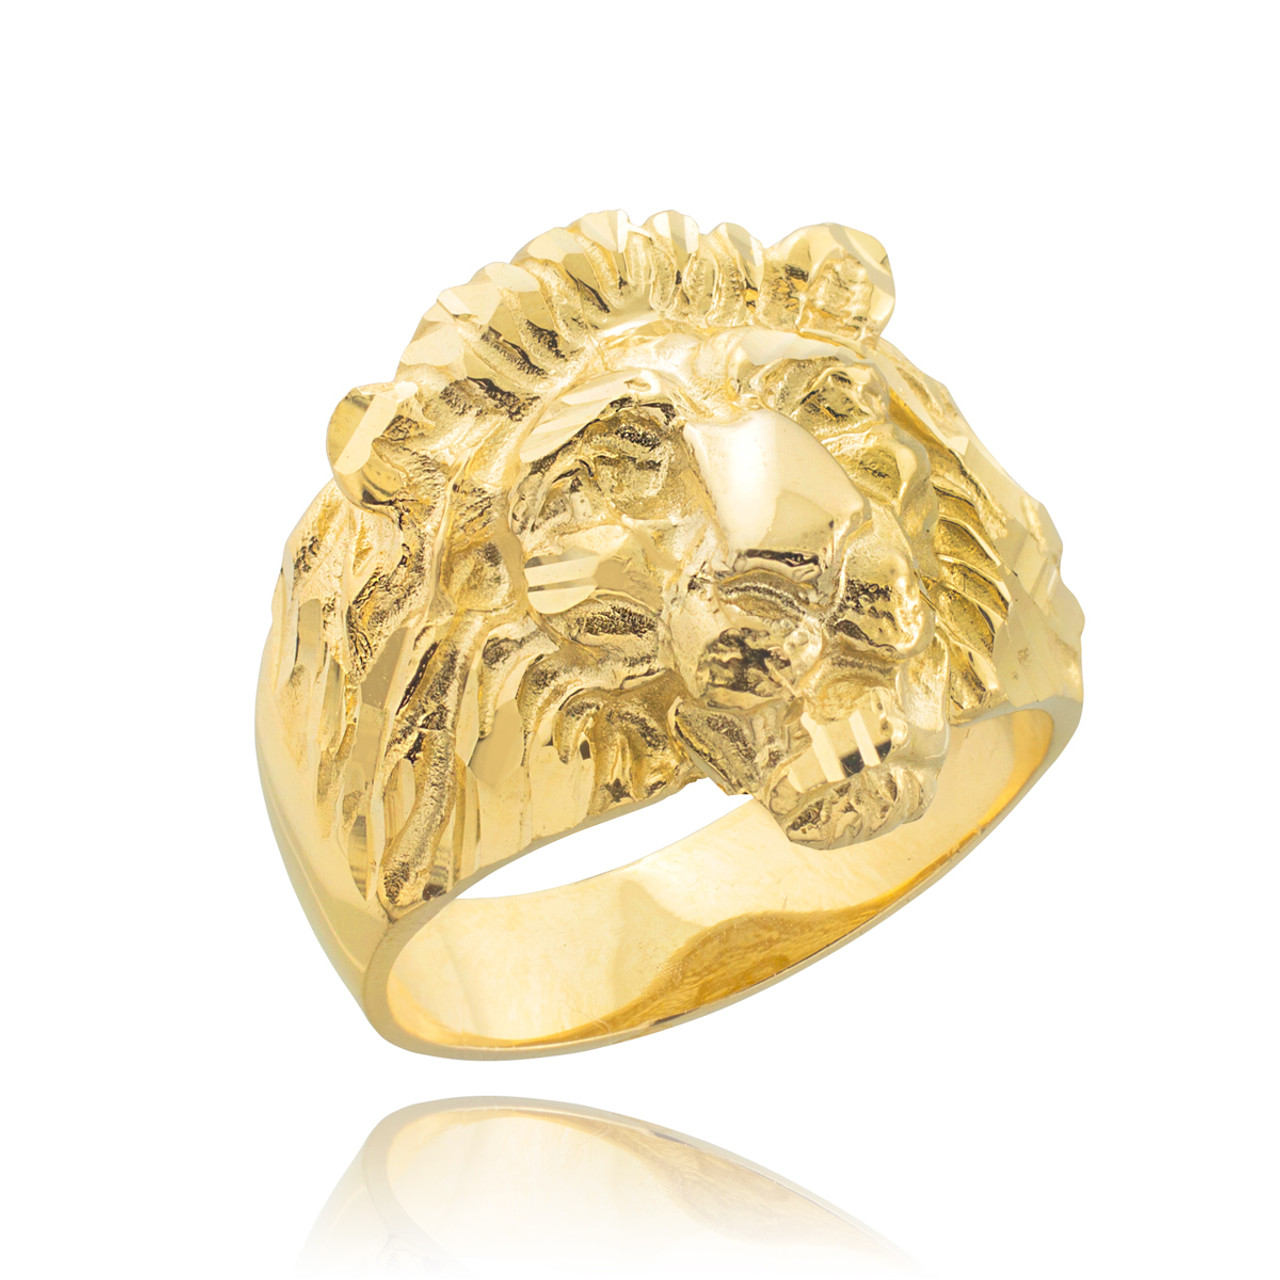 heavy ring rings head handcarved solid large yellow product size lion mens new gold